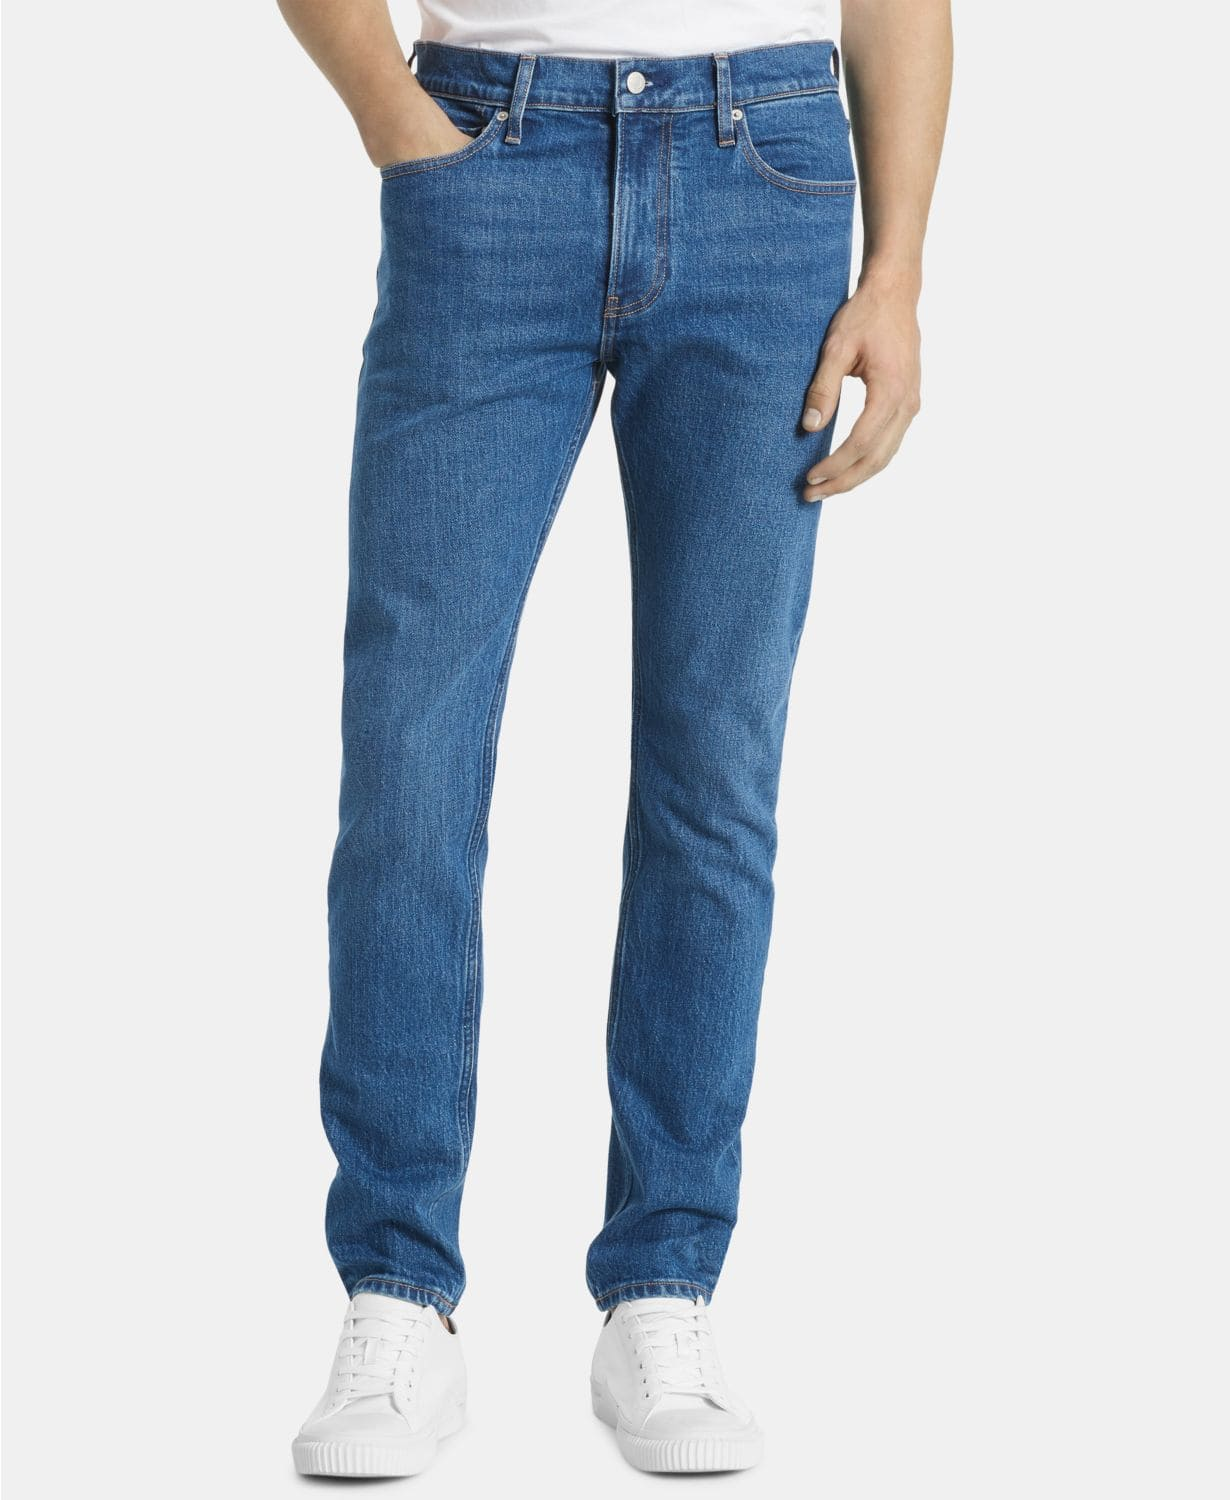 a00b92a6 Levi's 541 Athletic Fit Jeans(Boysenberry) $14.93, Calvin Klein Relaxed  Straight-Fit Jeans(Alaska/black) $19.96, Calvin Klein Slim-Fit Stretch Logo  Jeans ...